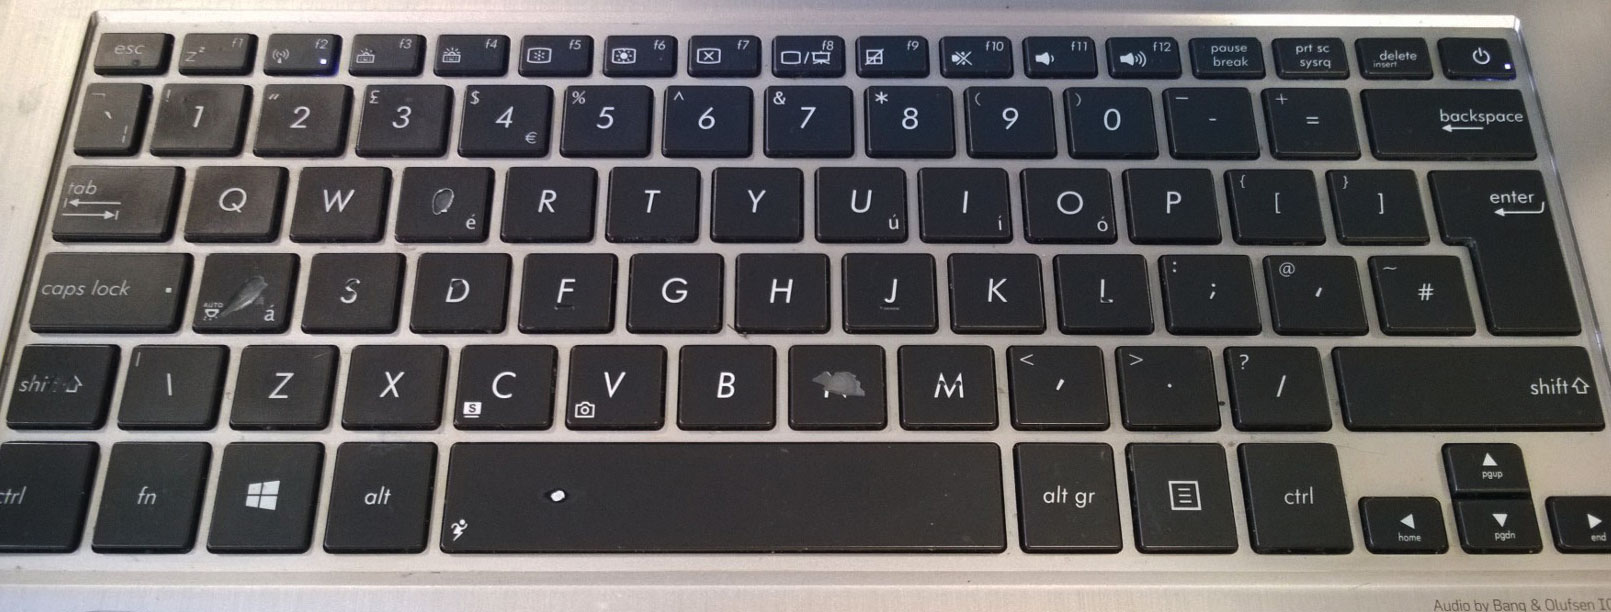 a laptop keyboard showing signs of wear from long term use - patina